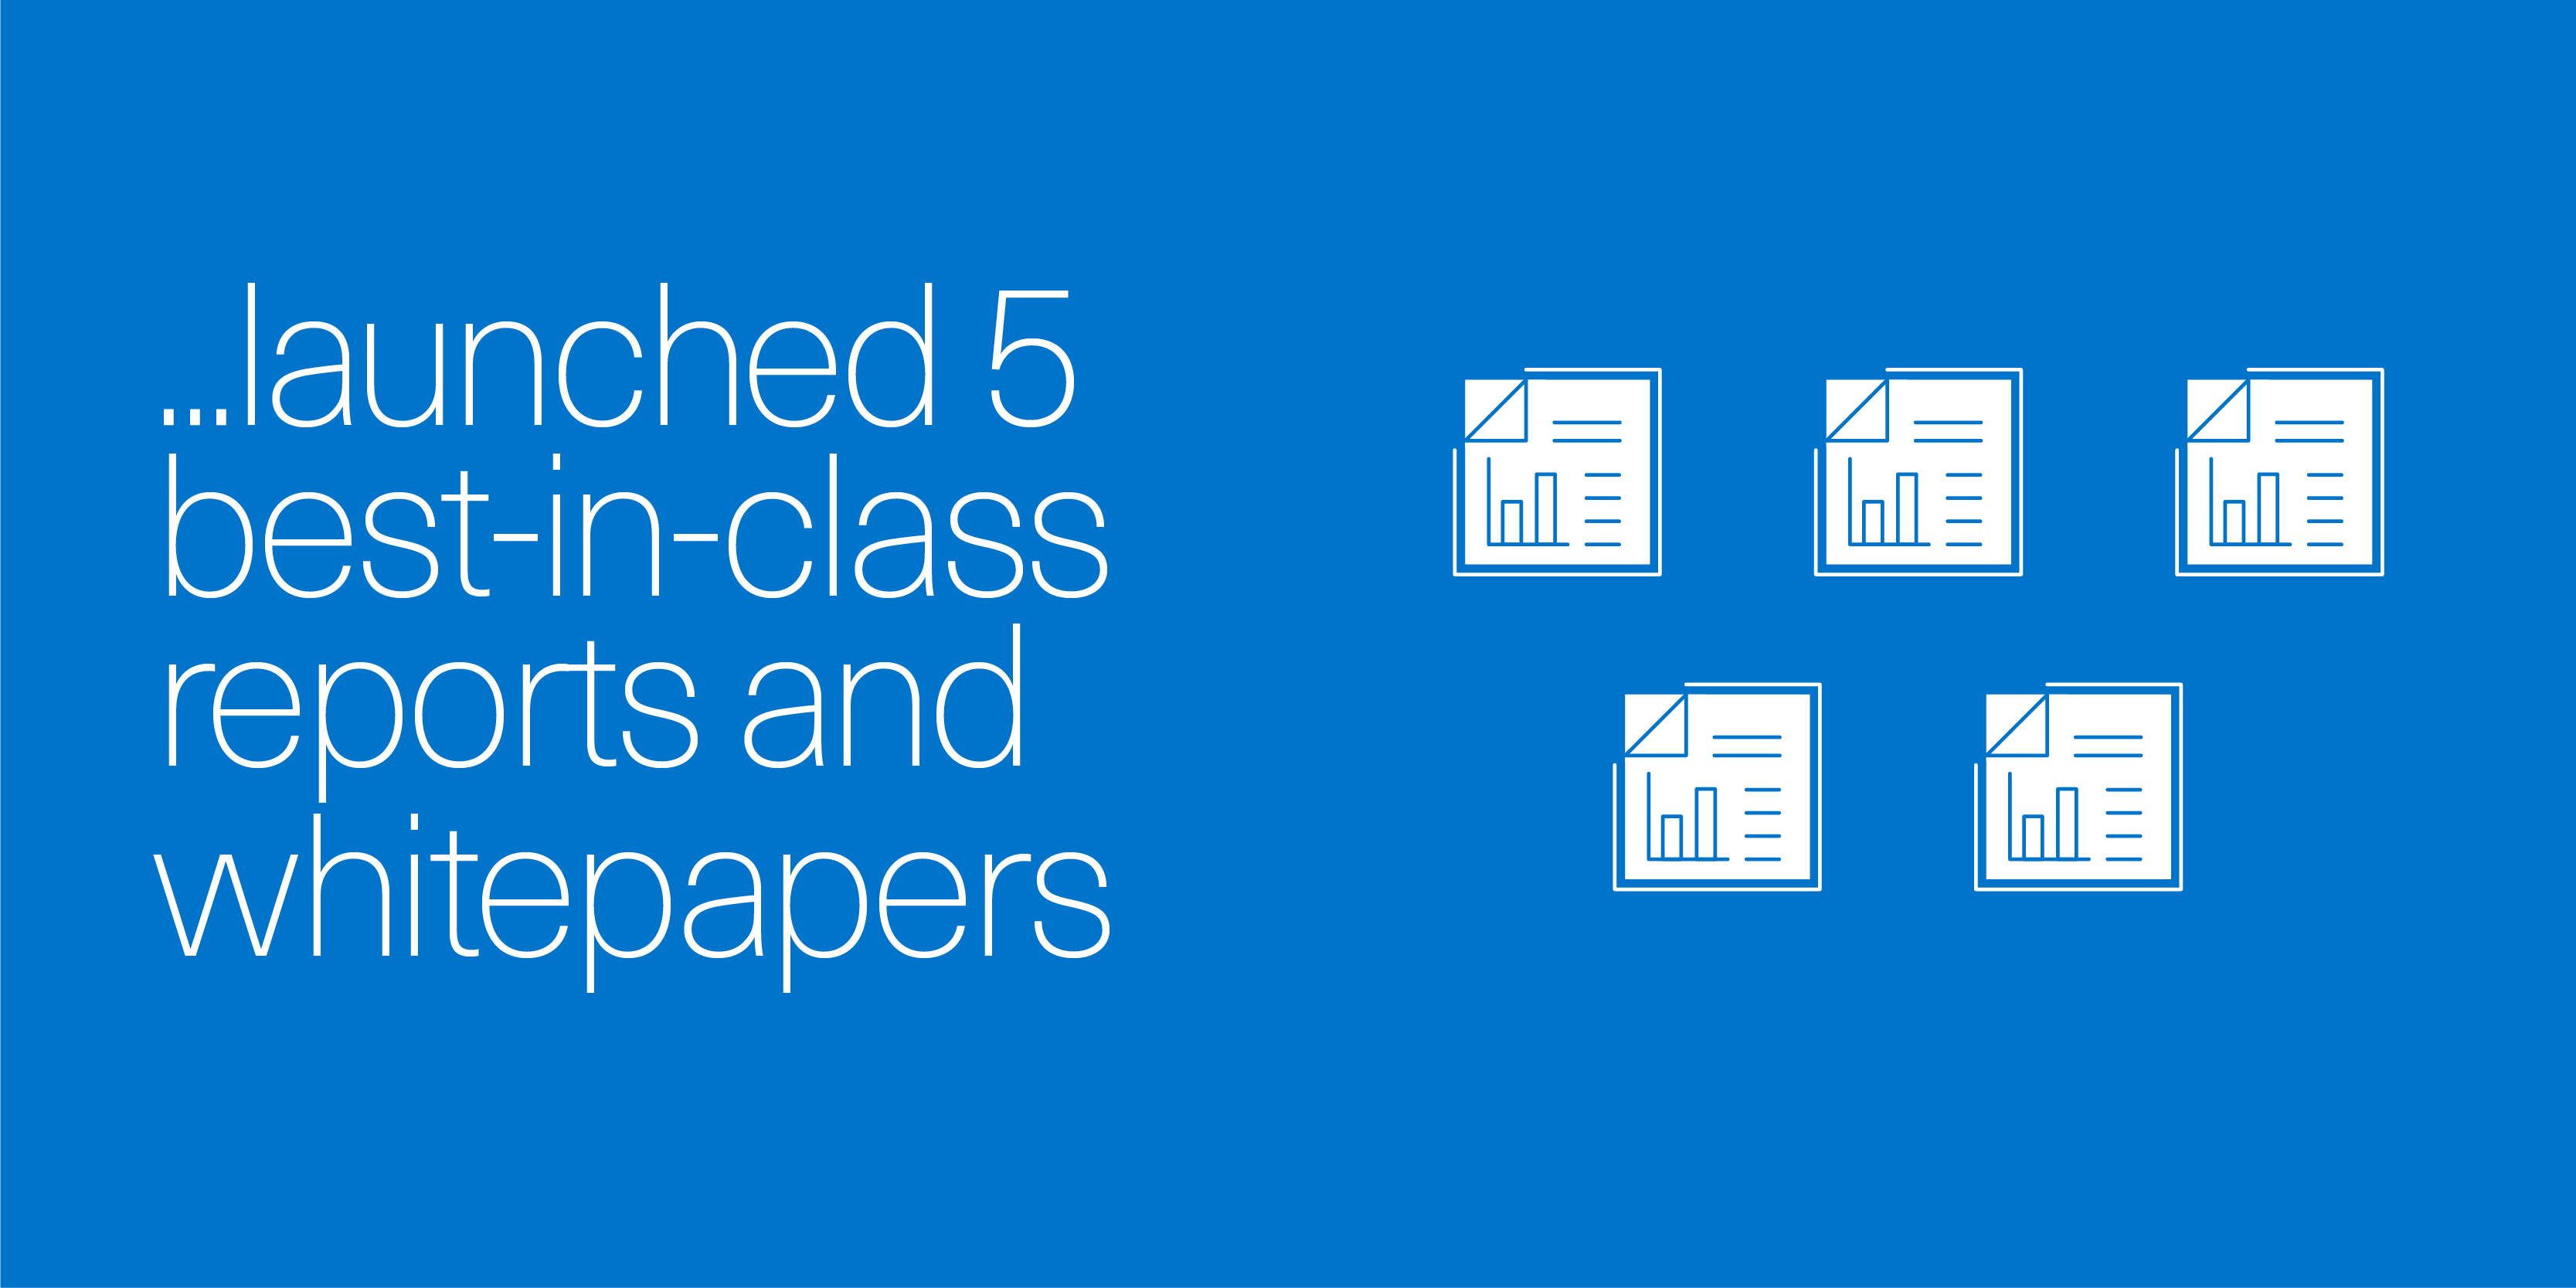 launched 5 best-in-class reports and whitepapers